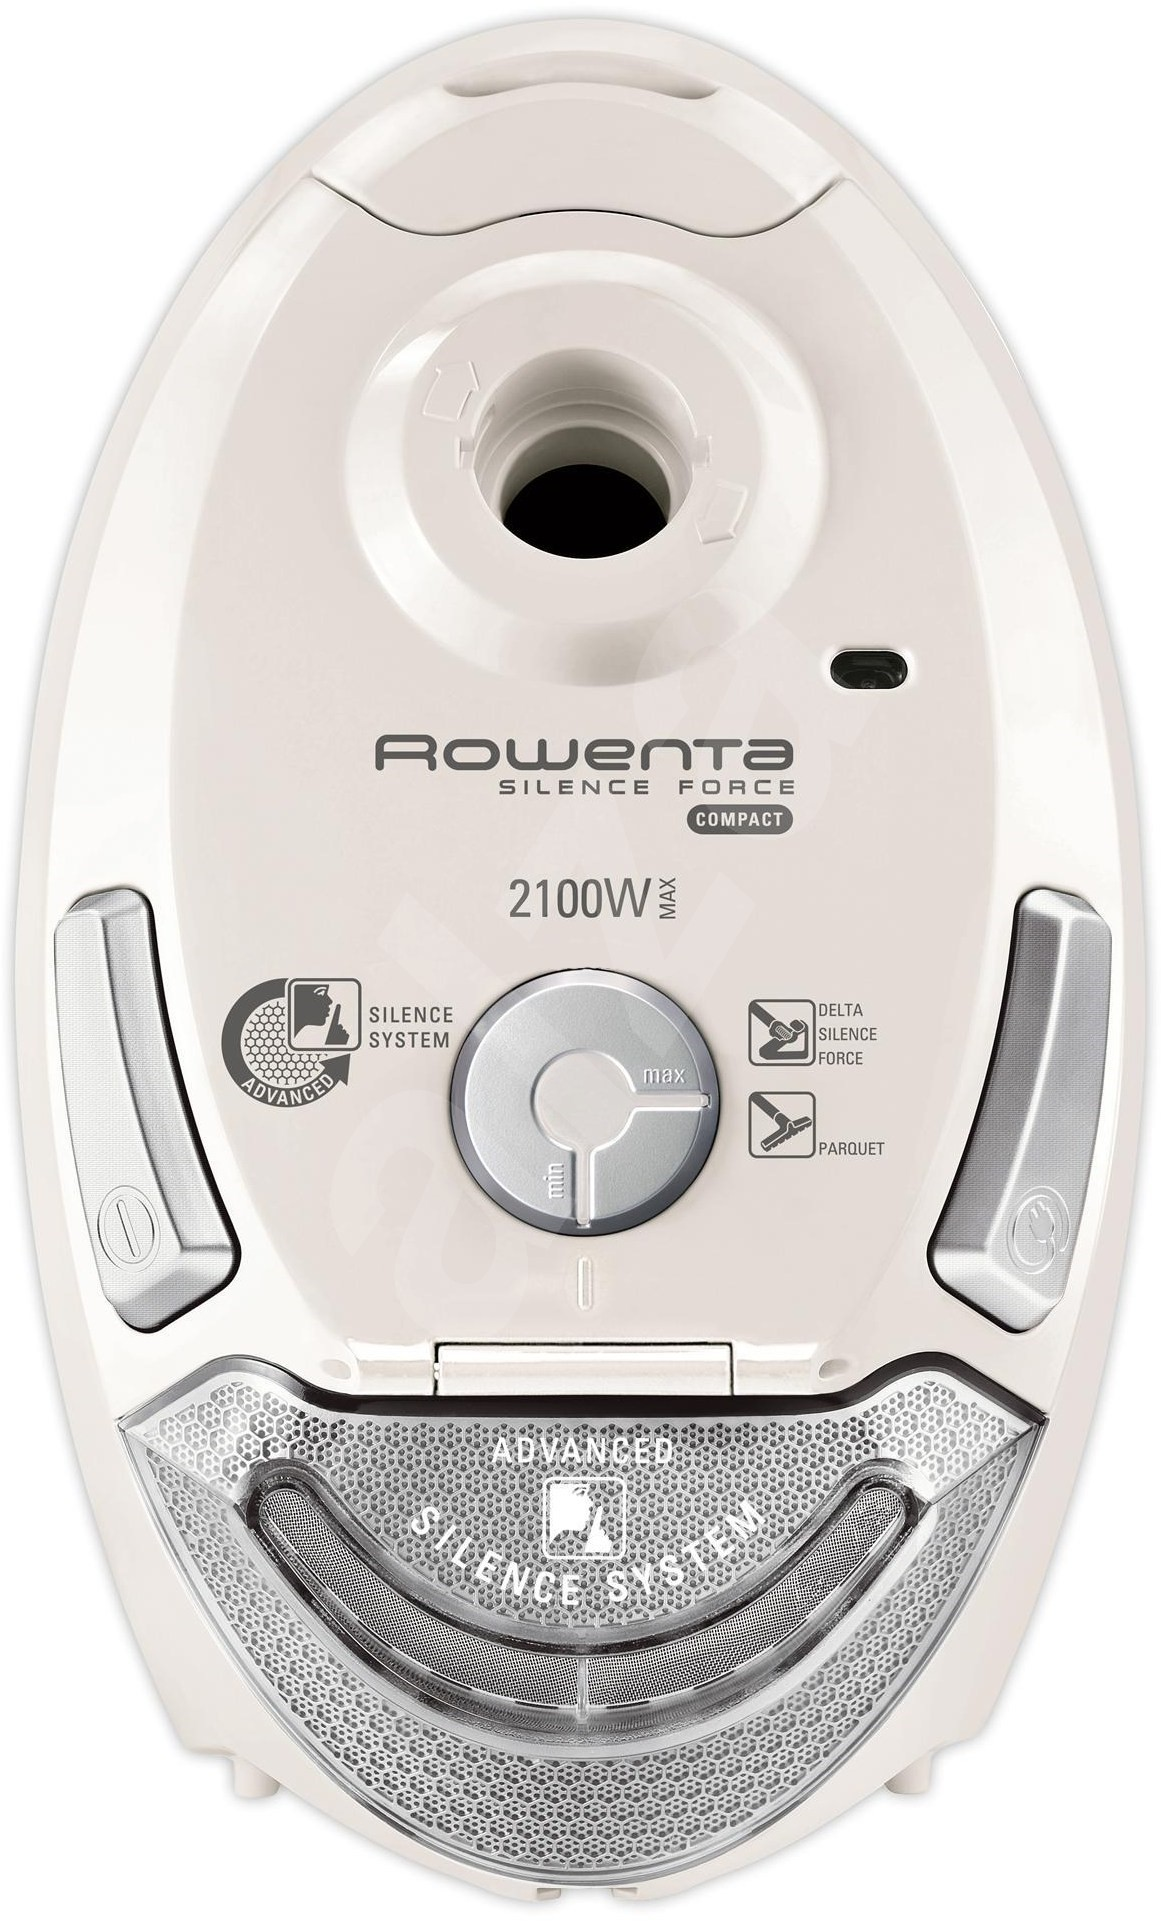 rowenta silence force compact ro4627 bagged vacuum cleaner. Black Bedroom Furniture Sets. Home Design Ideas